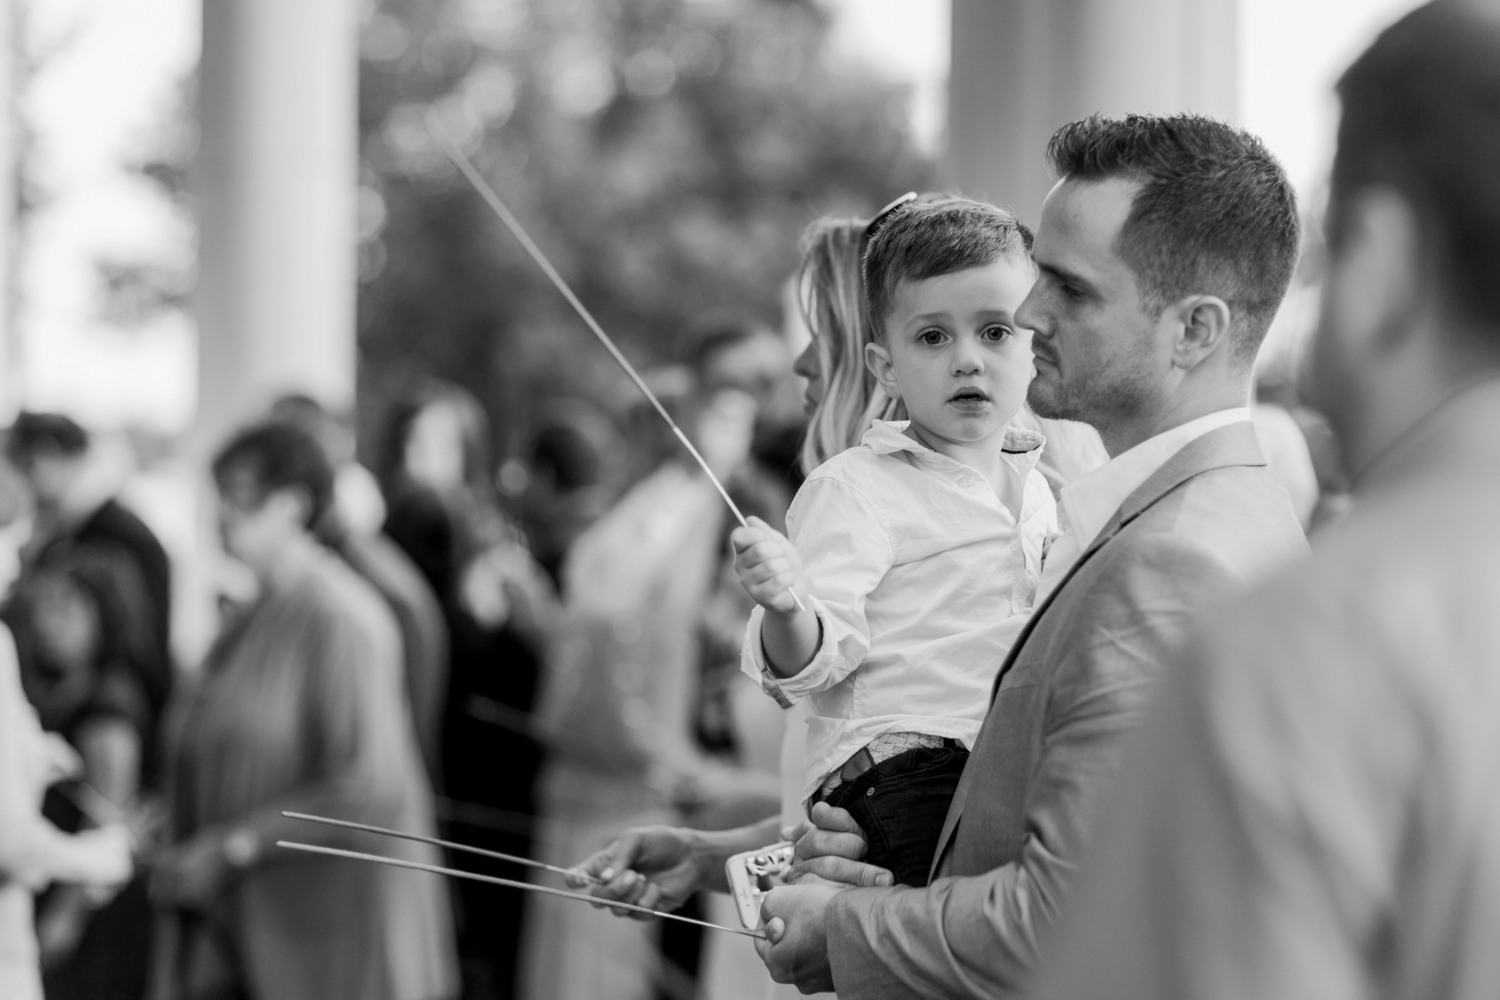 Community_Life_Center_Indianapolis_Indiana_Wedding_Photographer_Chloe_Luka_Photography_6998.jpg